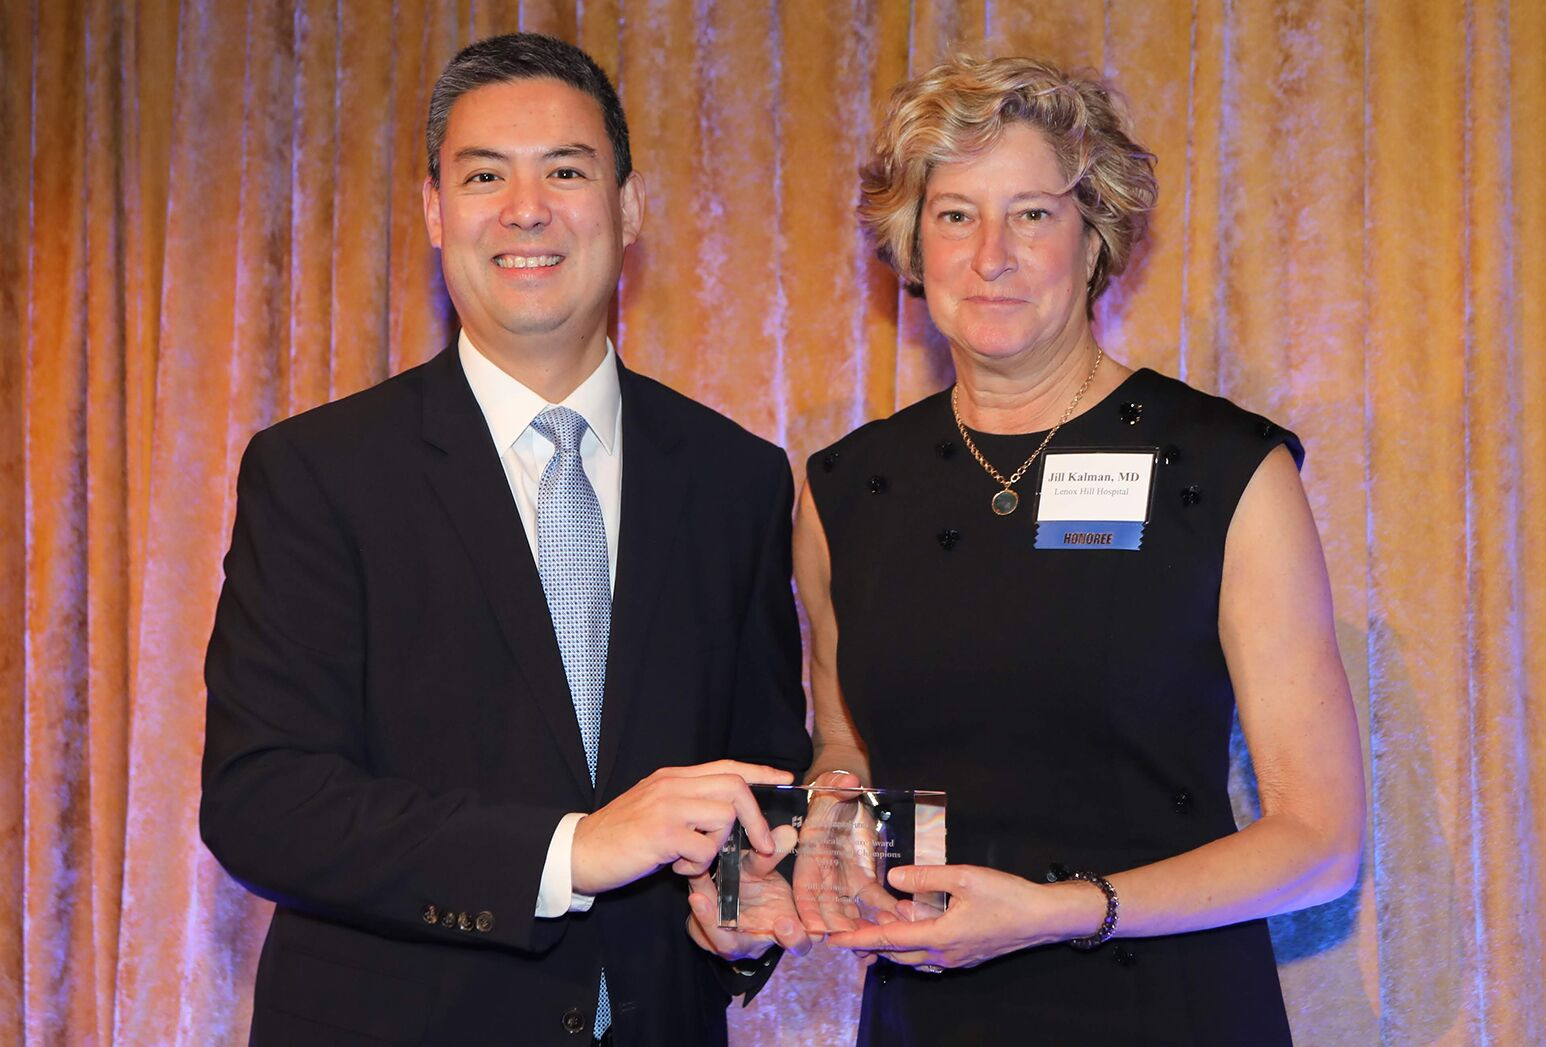 Jill Kalman, MD, executive director of Lenox Hill Hospital receives the United Hospital Fund award.